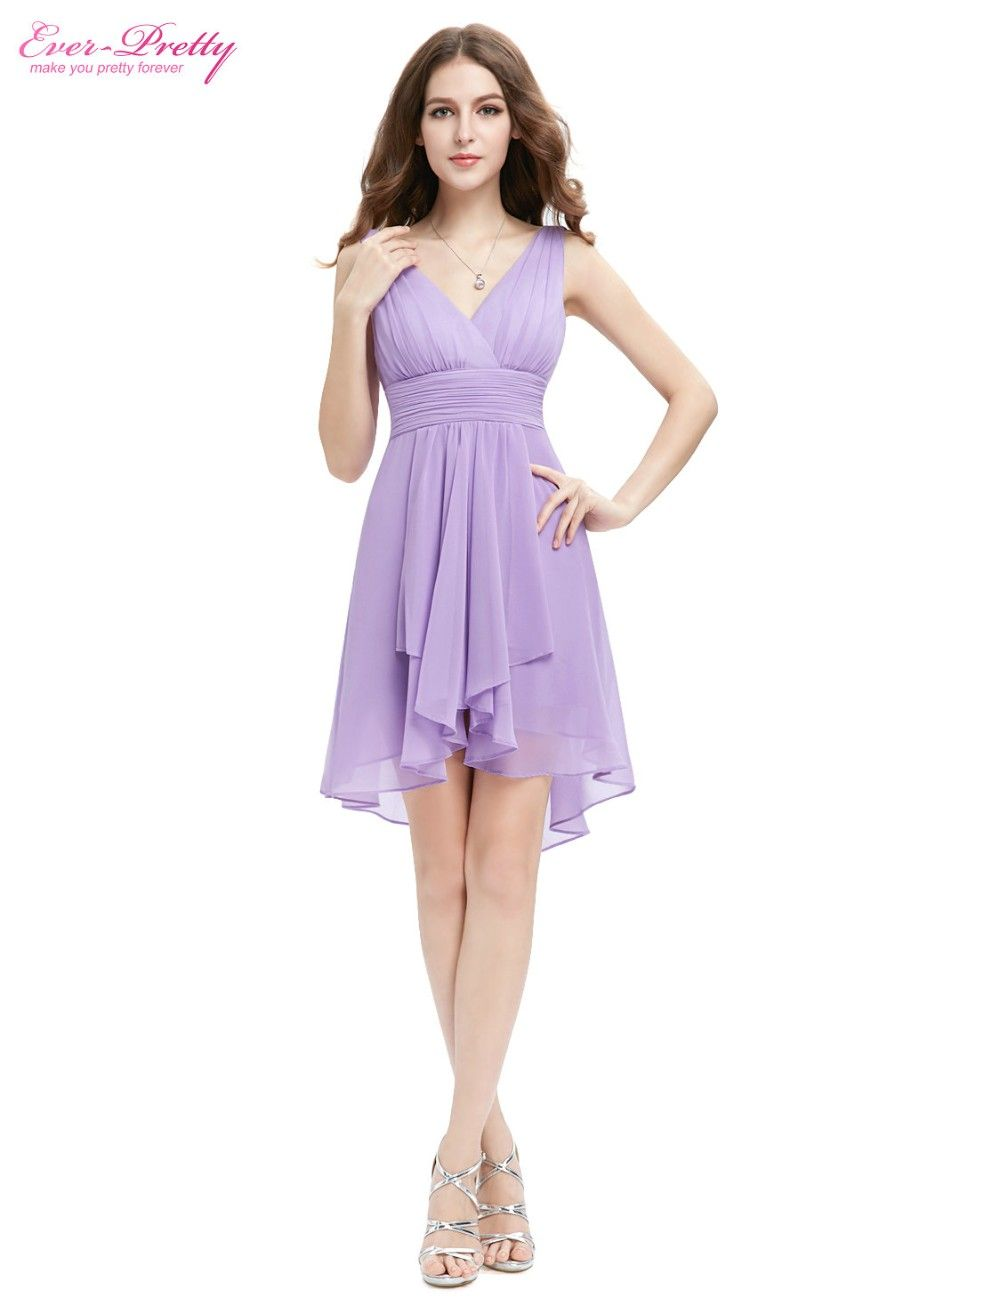 Ever Pretty Short High Low Bridesmaid Dresses w/ Ruffles & V Neck ...